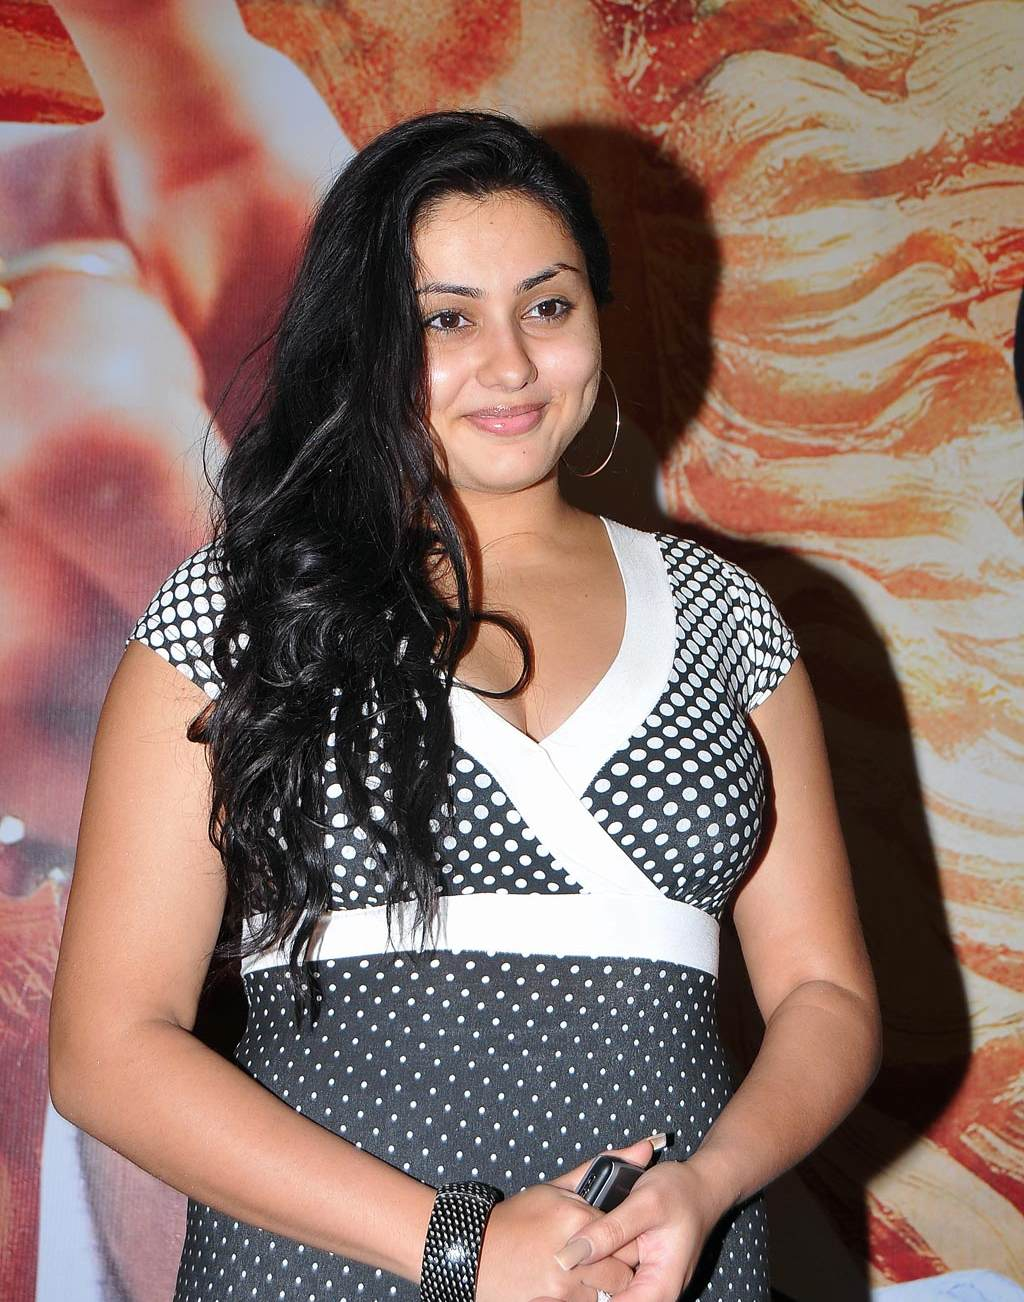 actress namitha hairstyle pictures%2B7 FUCKING SISTER IN THE ASS